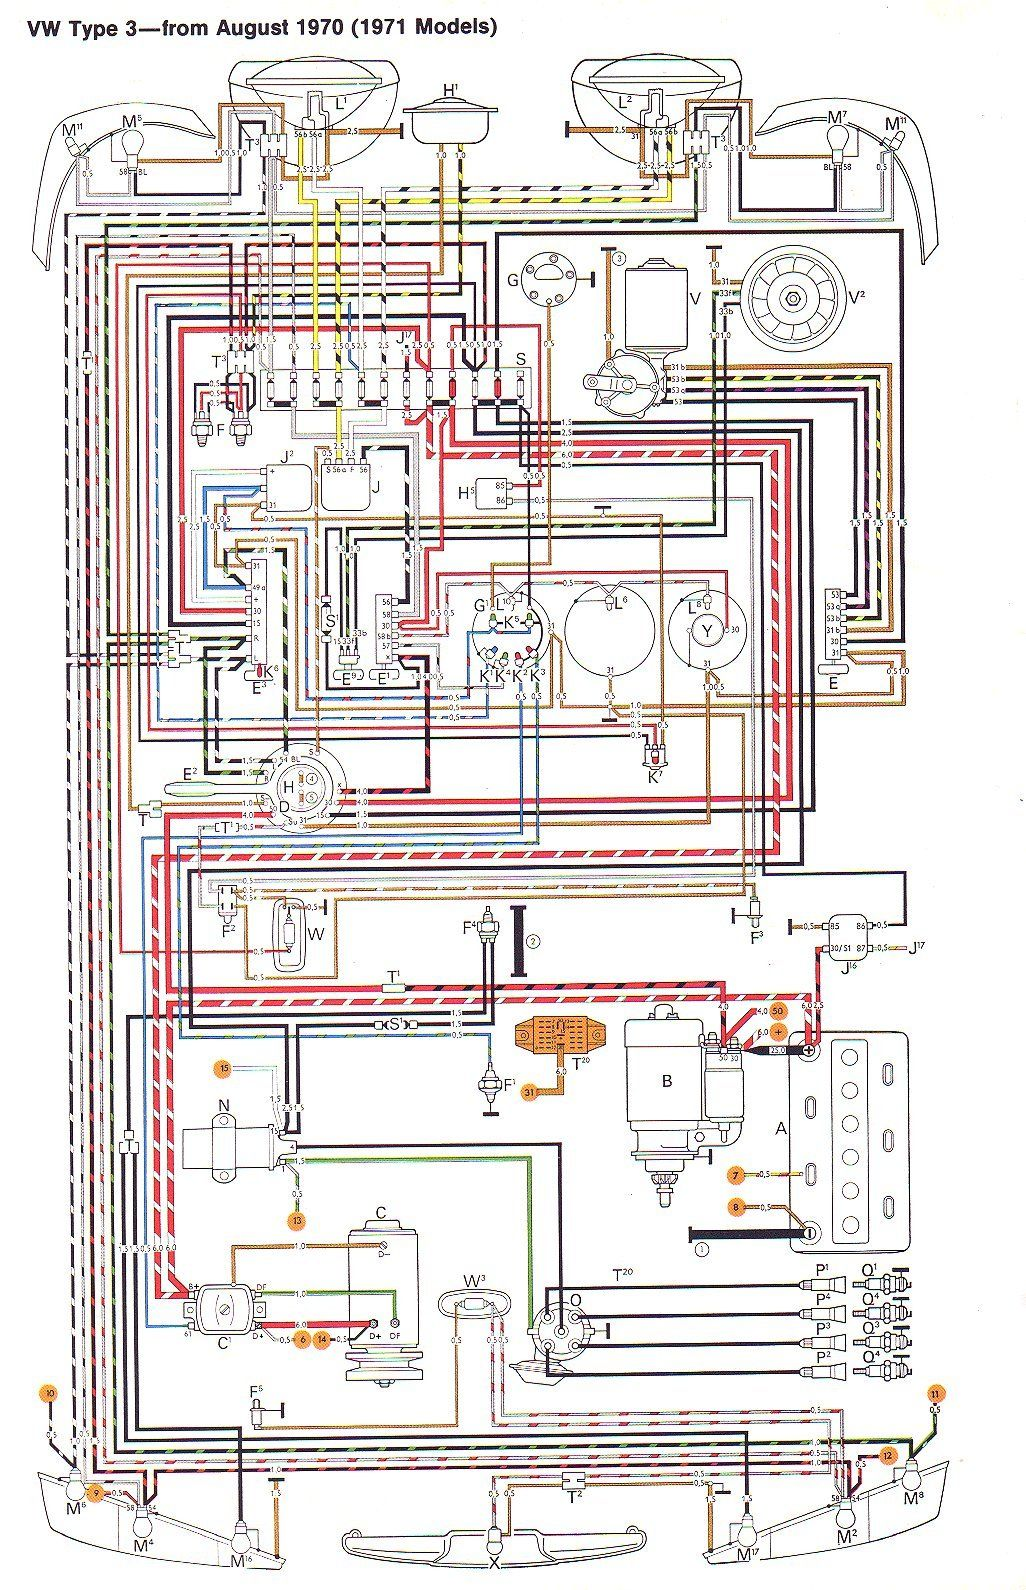 2000 Vw Cabriolet Fuse Panel Diagram likewise Fuses besides 1987 Vw Vanagon Wiring Diagram additionally 1988 Vw Doka Fuel Injection Wiring Schematic moreover 1984 Vanagon Wiring Diagram. on 1984 vw vanagon wiring diagram fuel